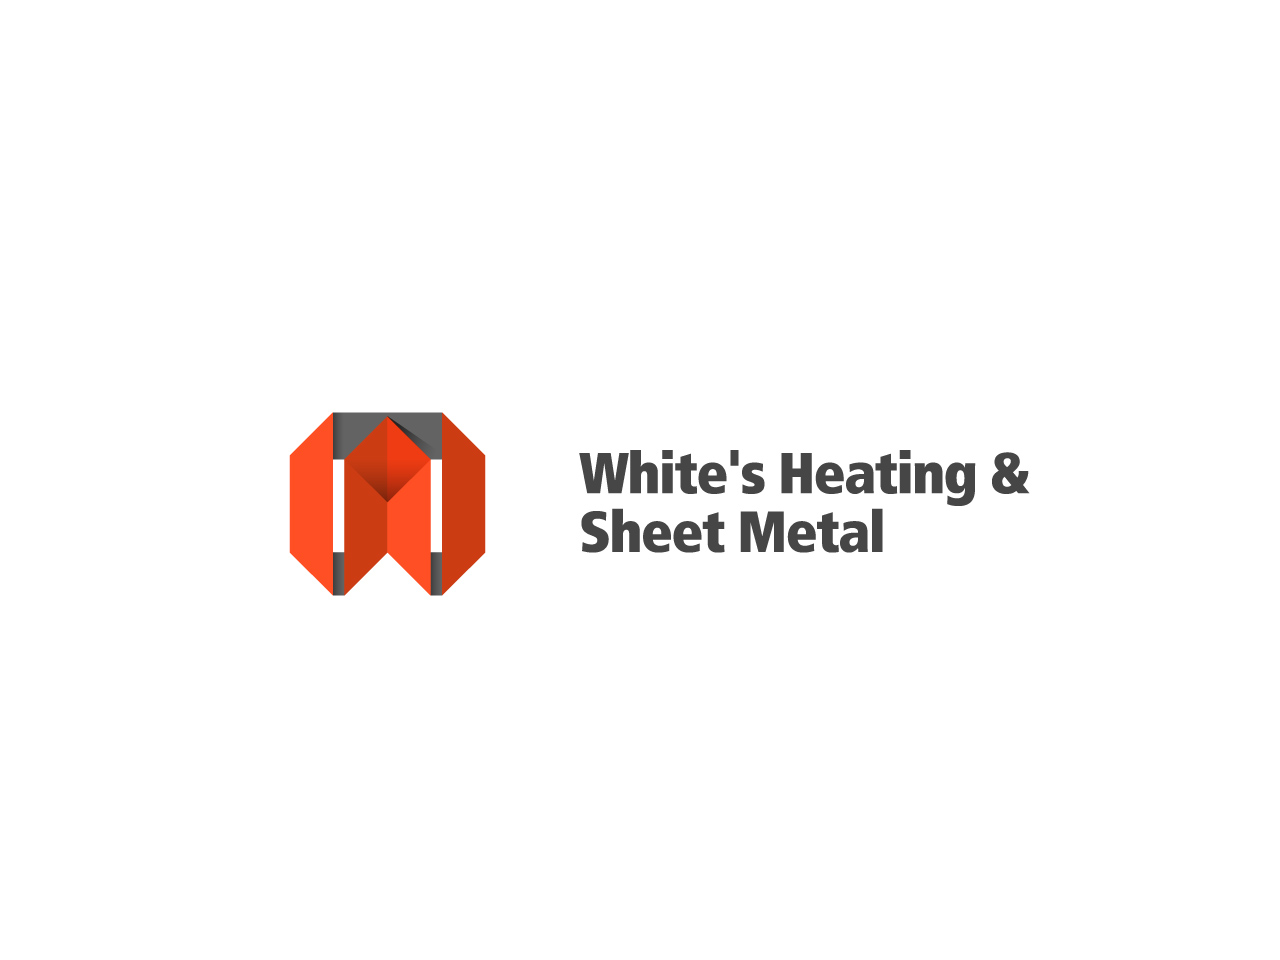 Logo Design by jpbituin - Entry No. 128 in the Logo Design Contest Imaginative Logo Design for White's Heating and Sheet Metal.